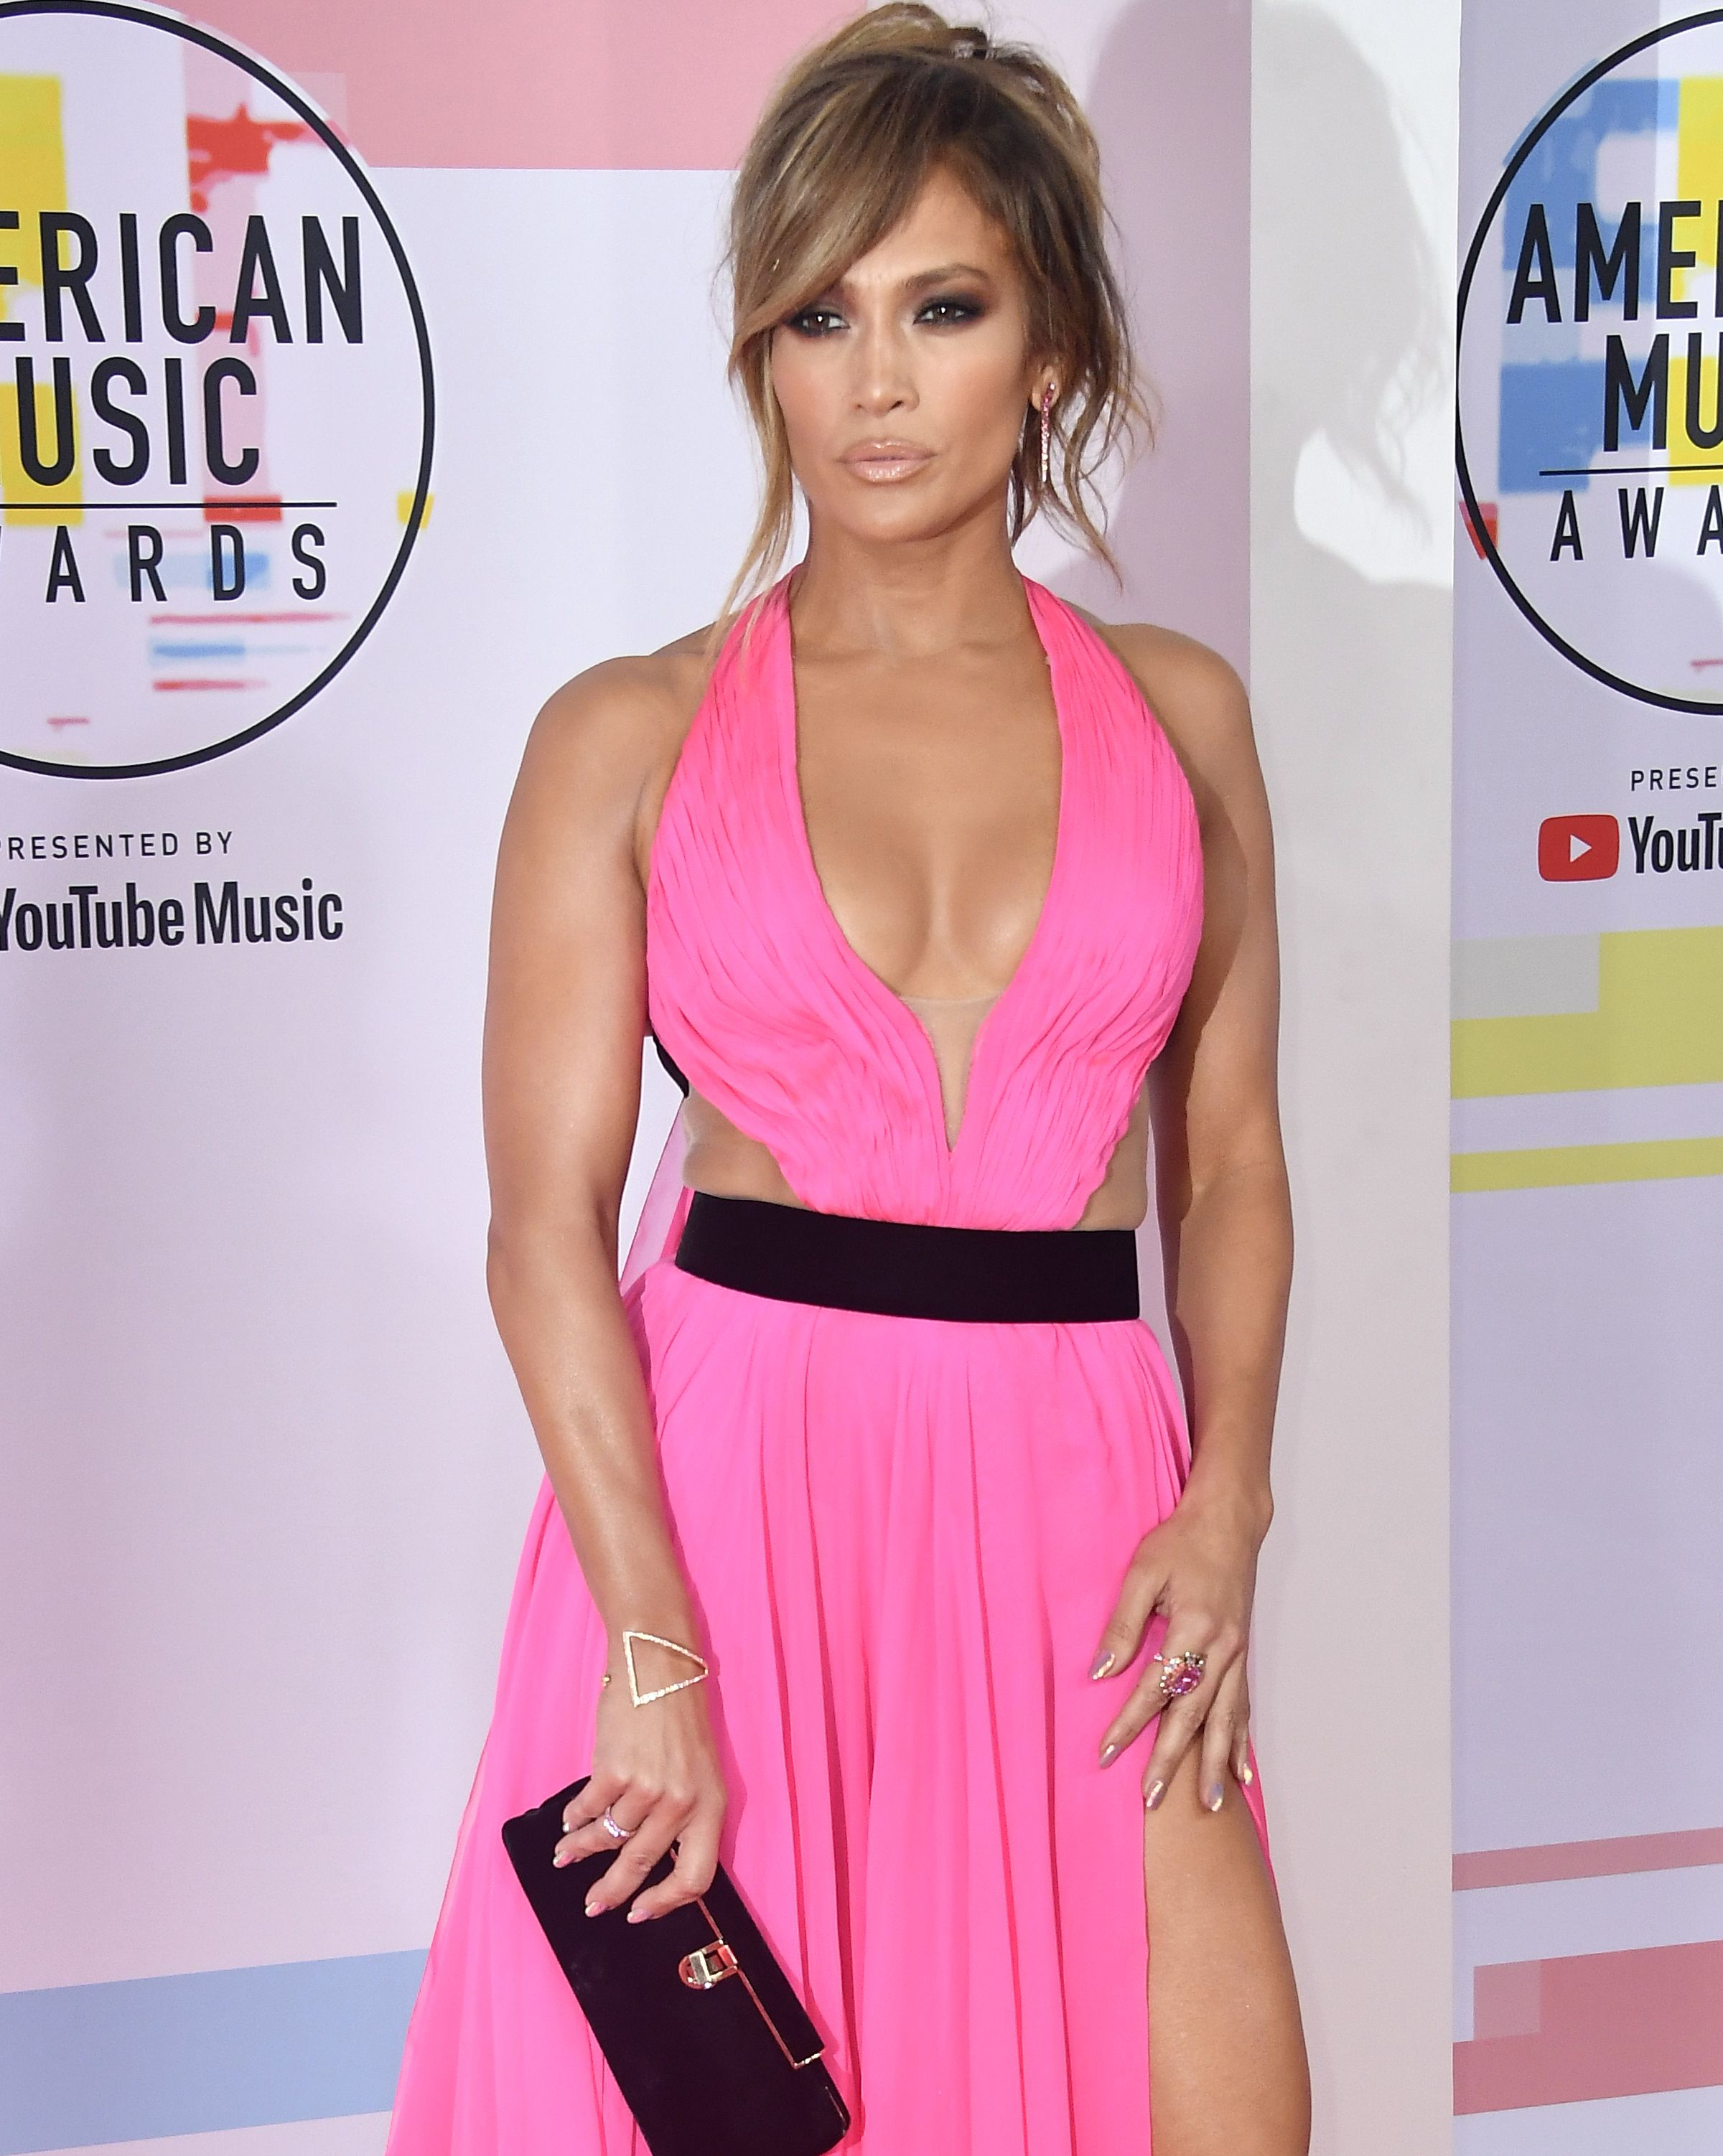 J.Lo Just Posed Half-Naked—and Revealed the Simple Secret to Her Ageless Body at 49